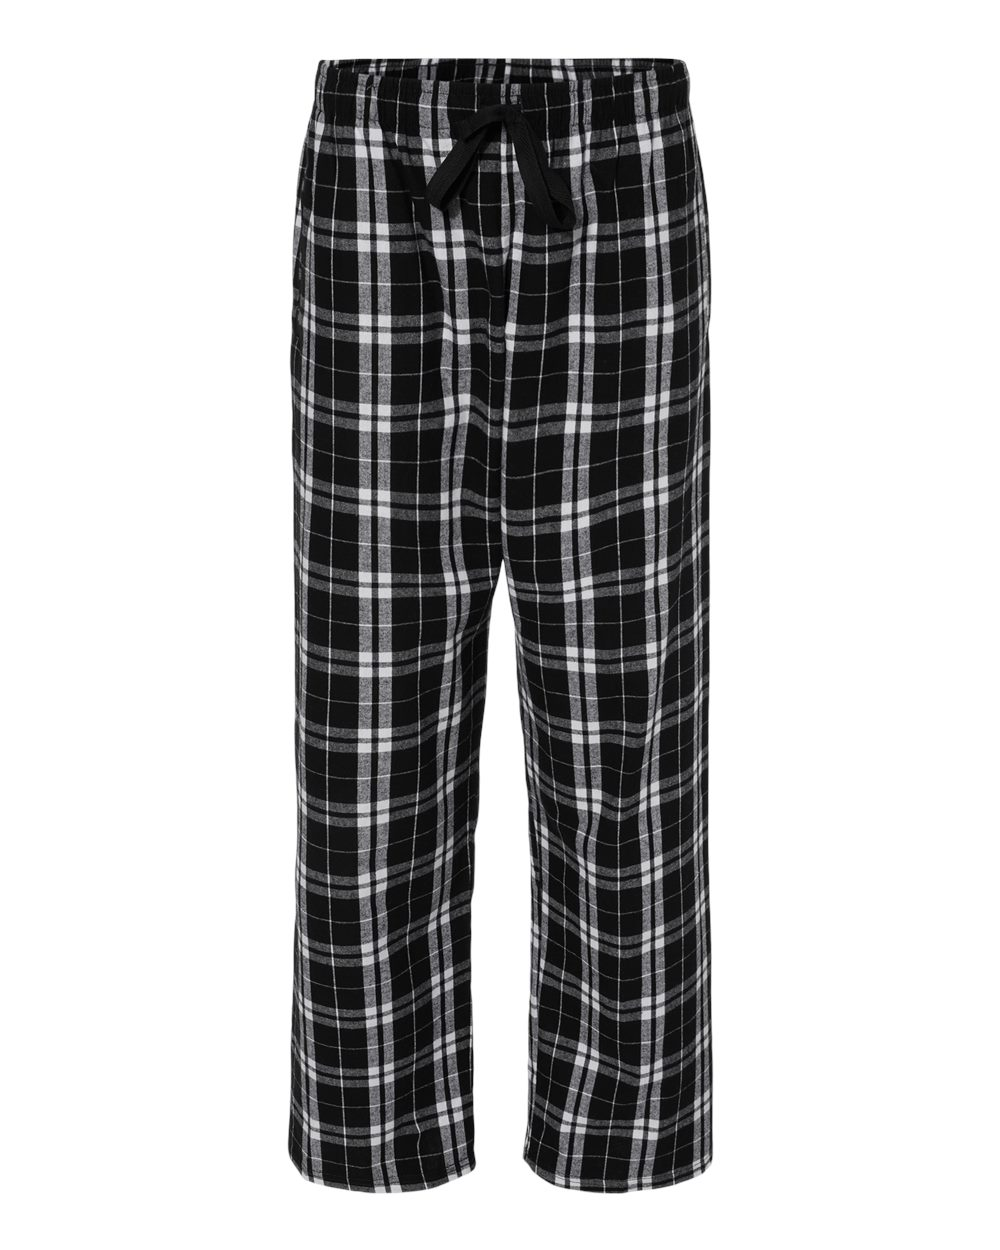 Boxercraft-Unisex-Flannel-Pants-With-Pockets-Pajama-Pants-F20-up-to-2XL thumbnail 9